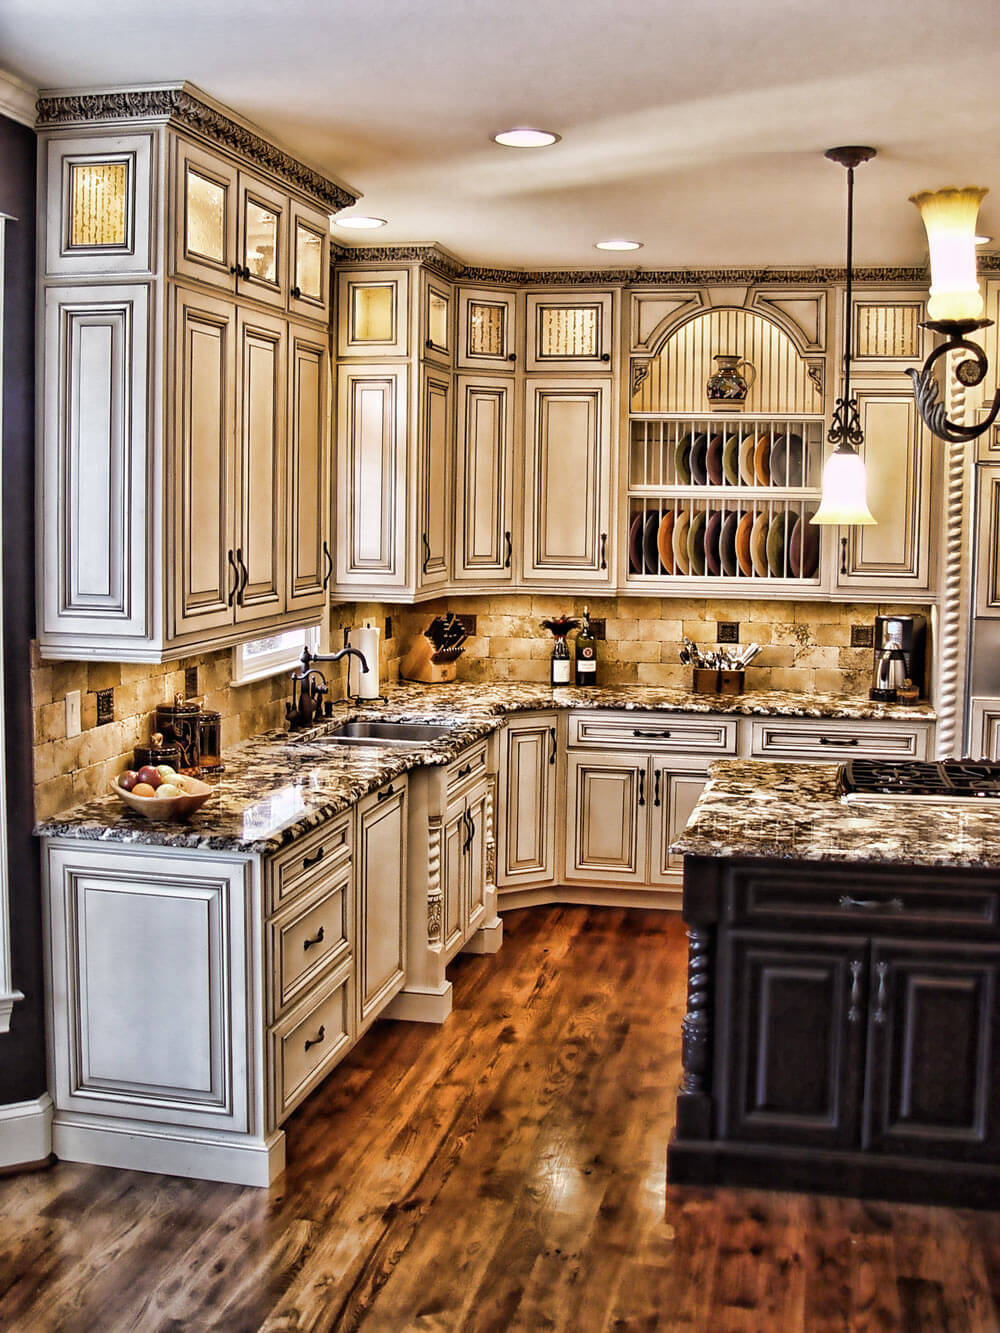 Delightful Maison Chic Rustic Kitchen Cabinet Designs